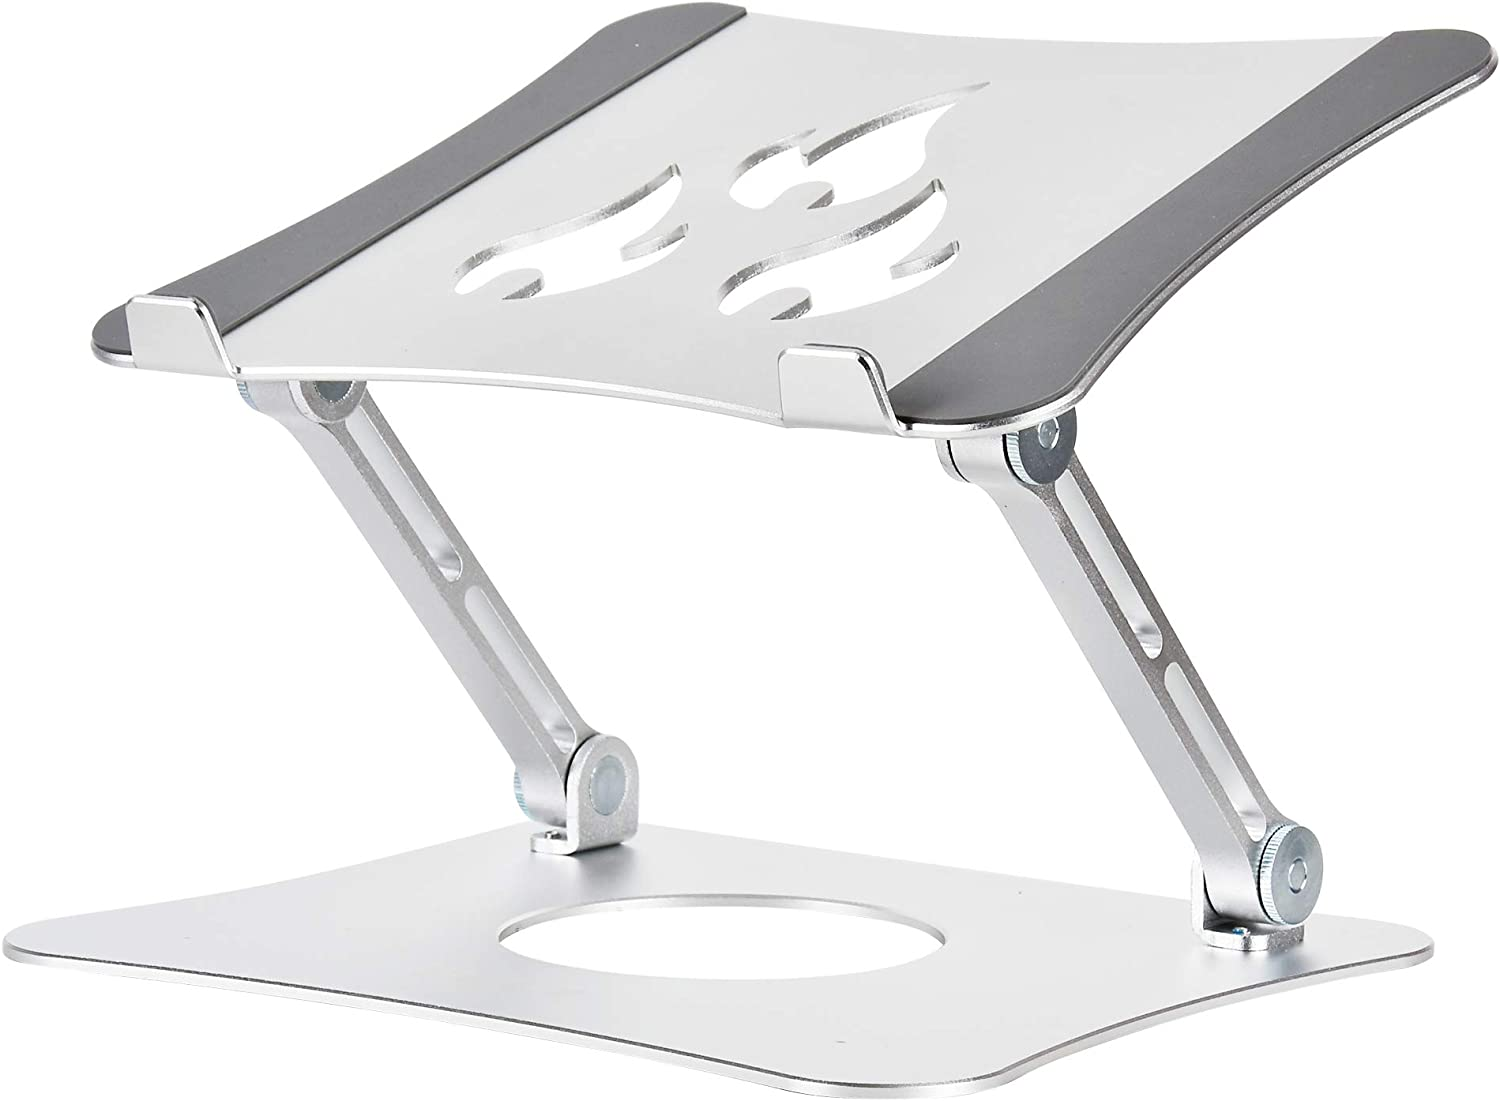 Adjustable Laptop Stand for Desk Portable Laptop Riser Notebook Holder Ergonomic Aluminum Laptop Vertical Computer Stand Heat-Vent Compatible with MacBook Air/Pro Surface Ipad Dell Xps HP 10-15.6